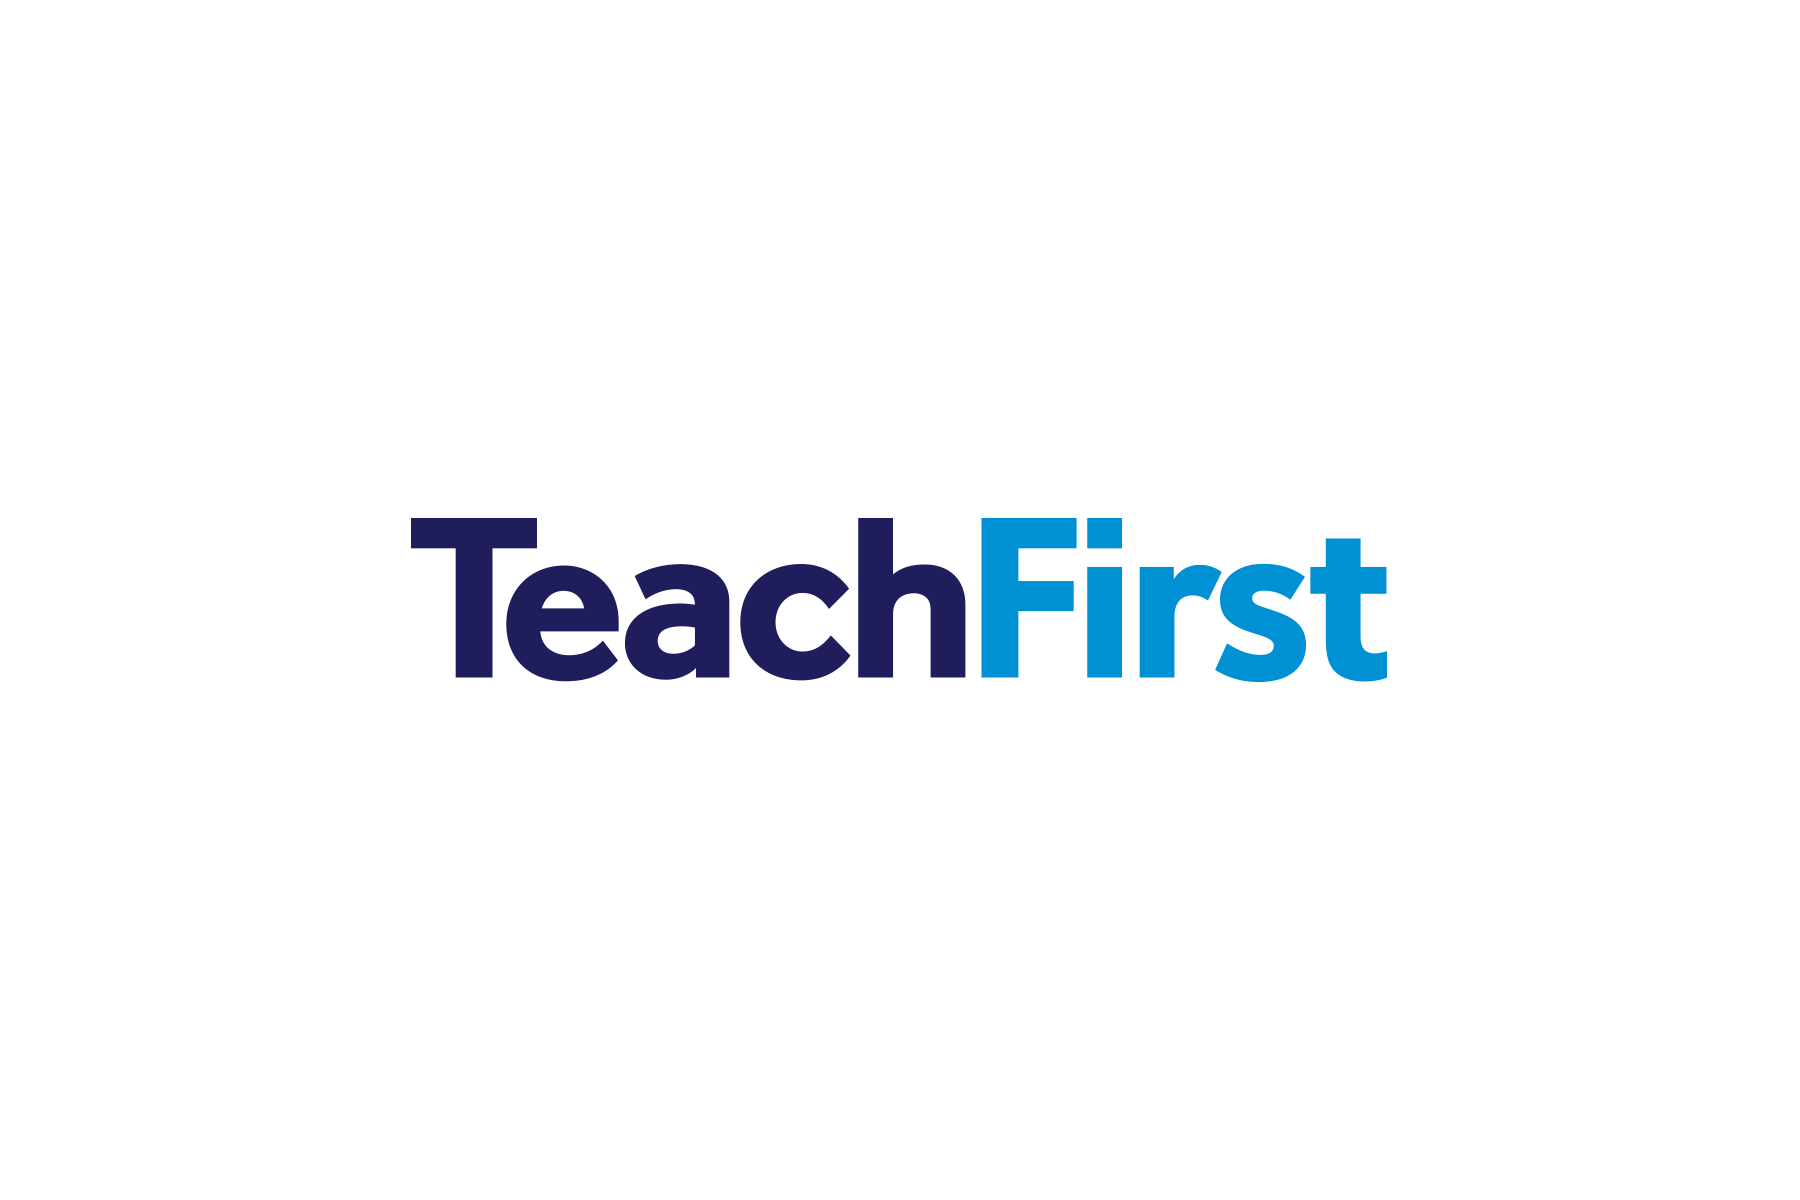 Teach First / Providing clarity around complex learning issues